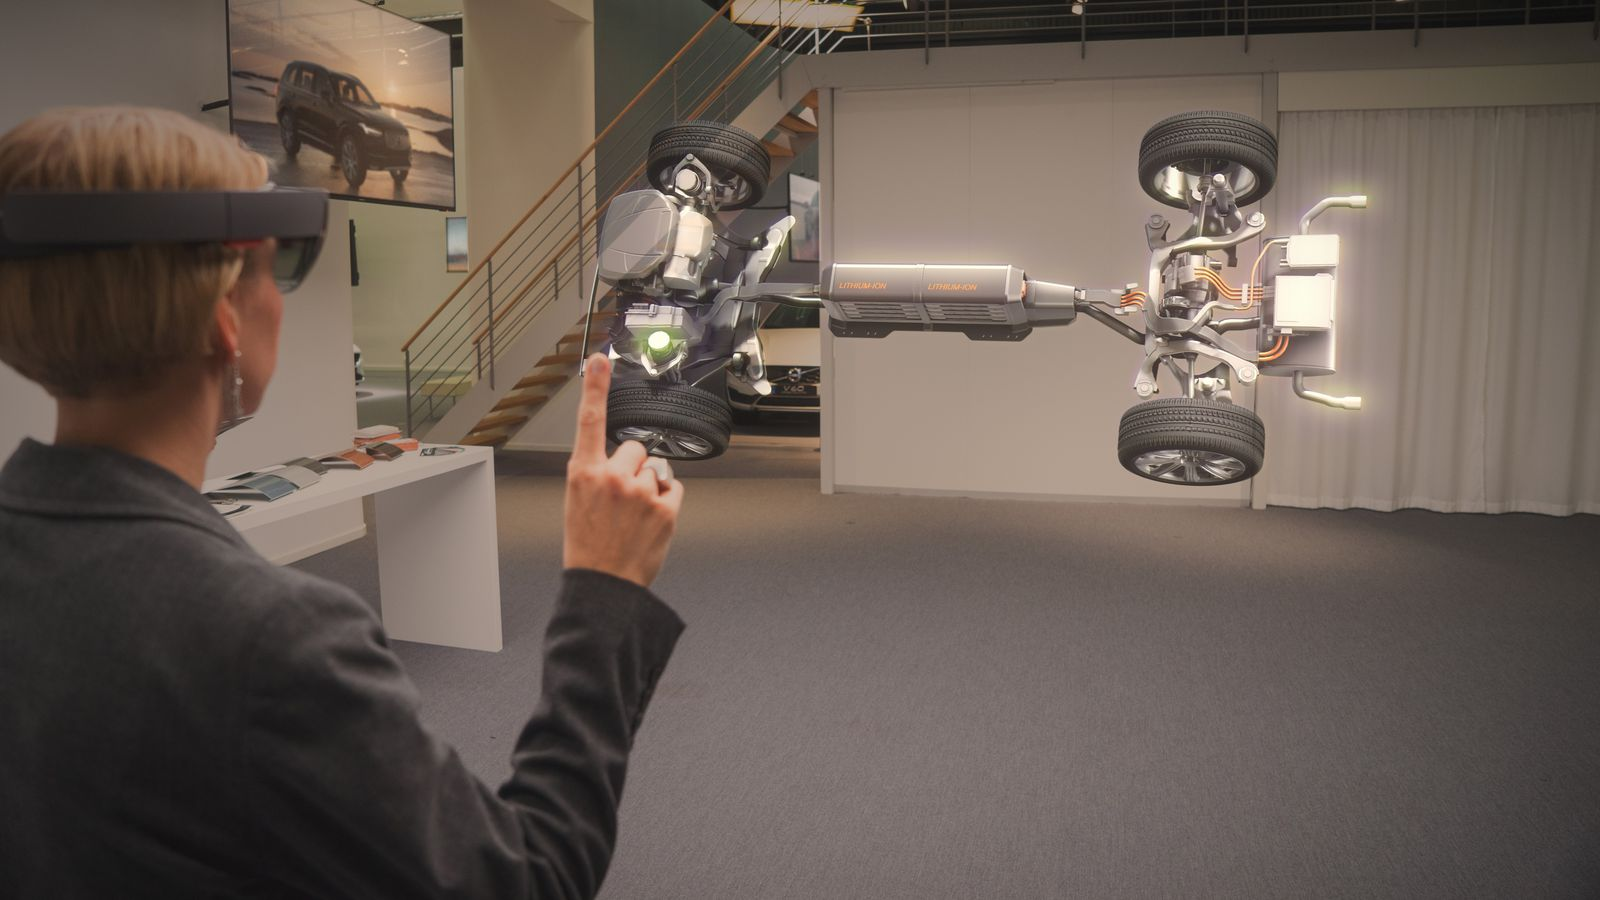 Microsoft and Volvo's new HoloLens showroom is fascinating